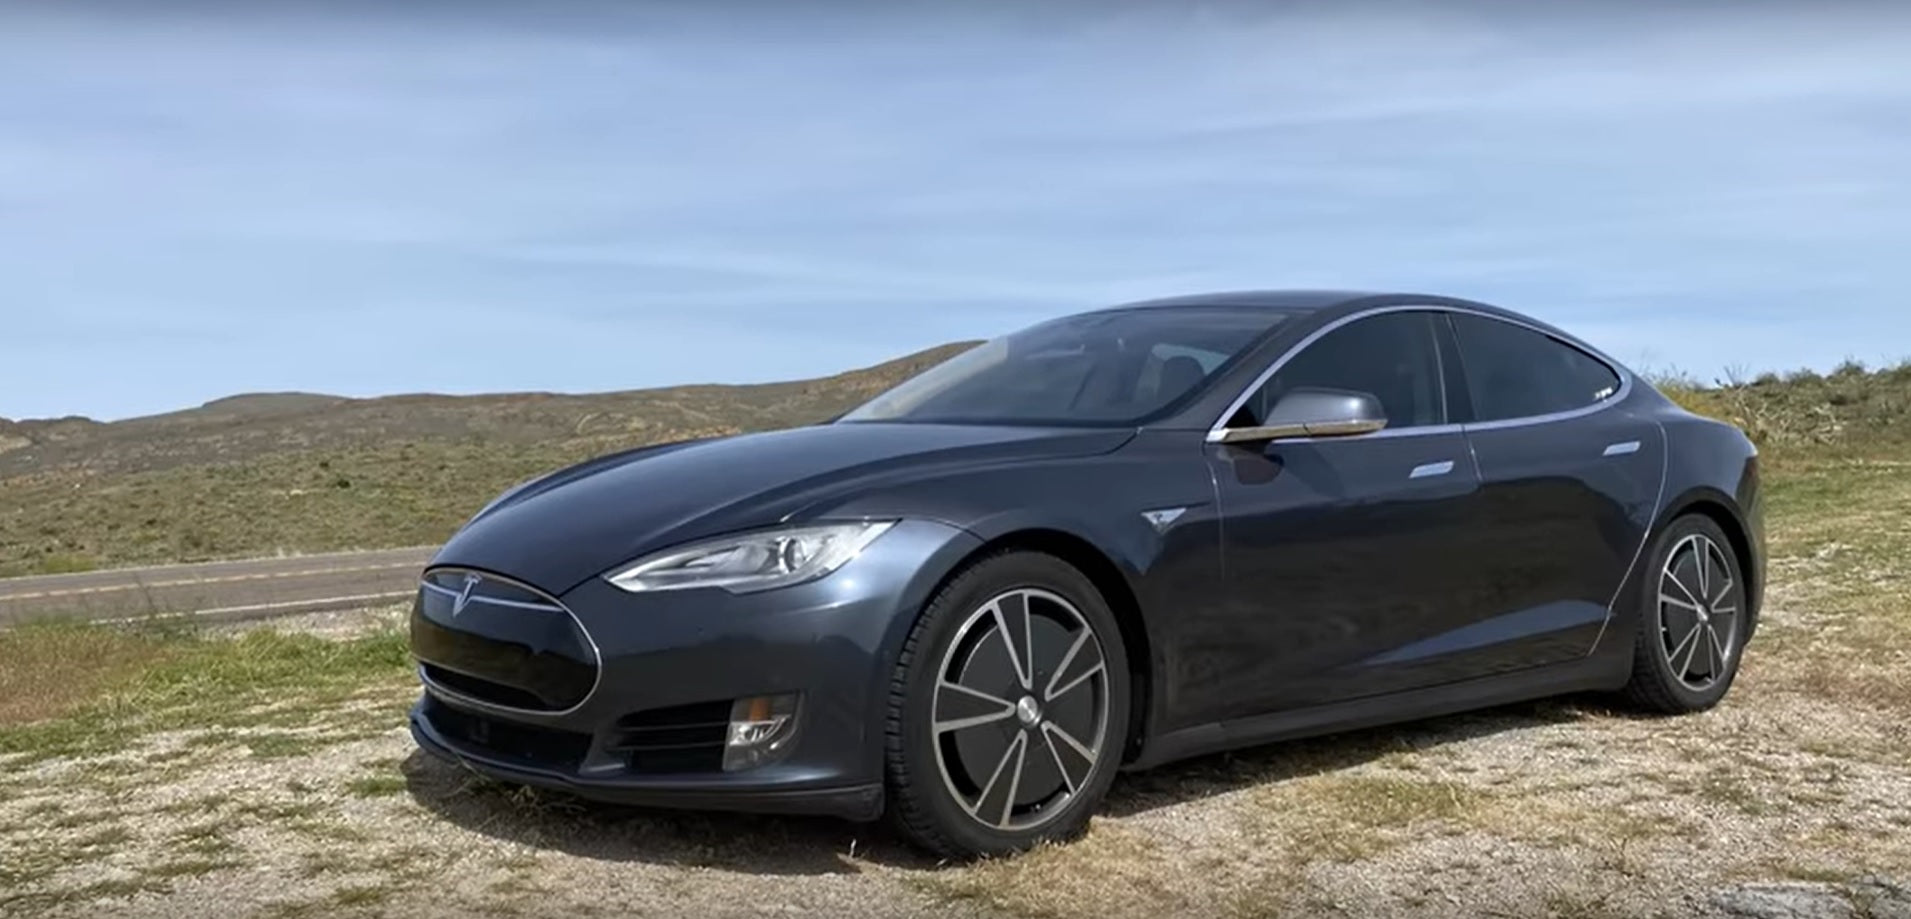 How's Tesla Battery Perform After 146K Miles and 1K Times Charging?